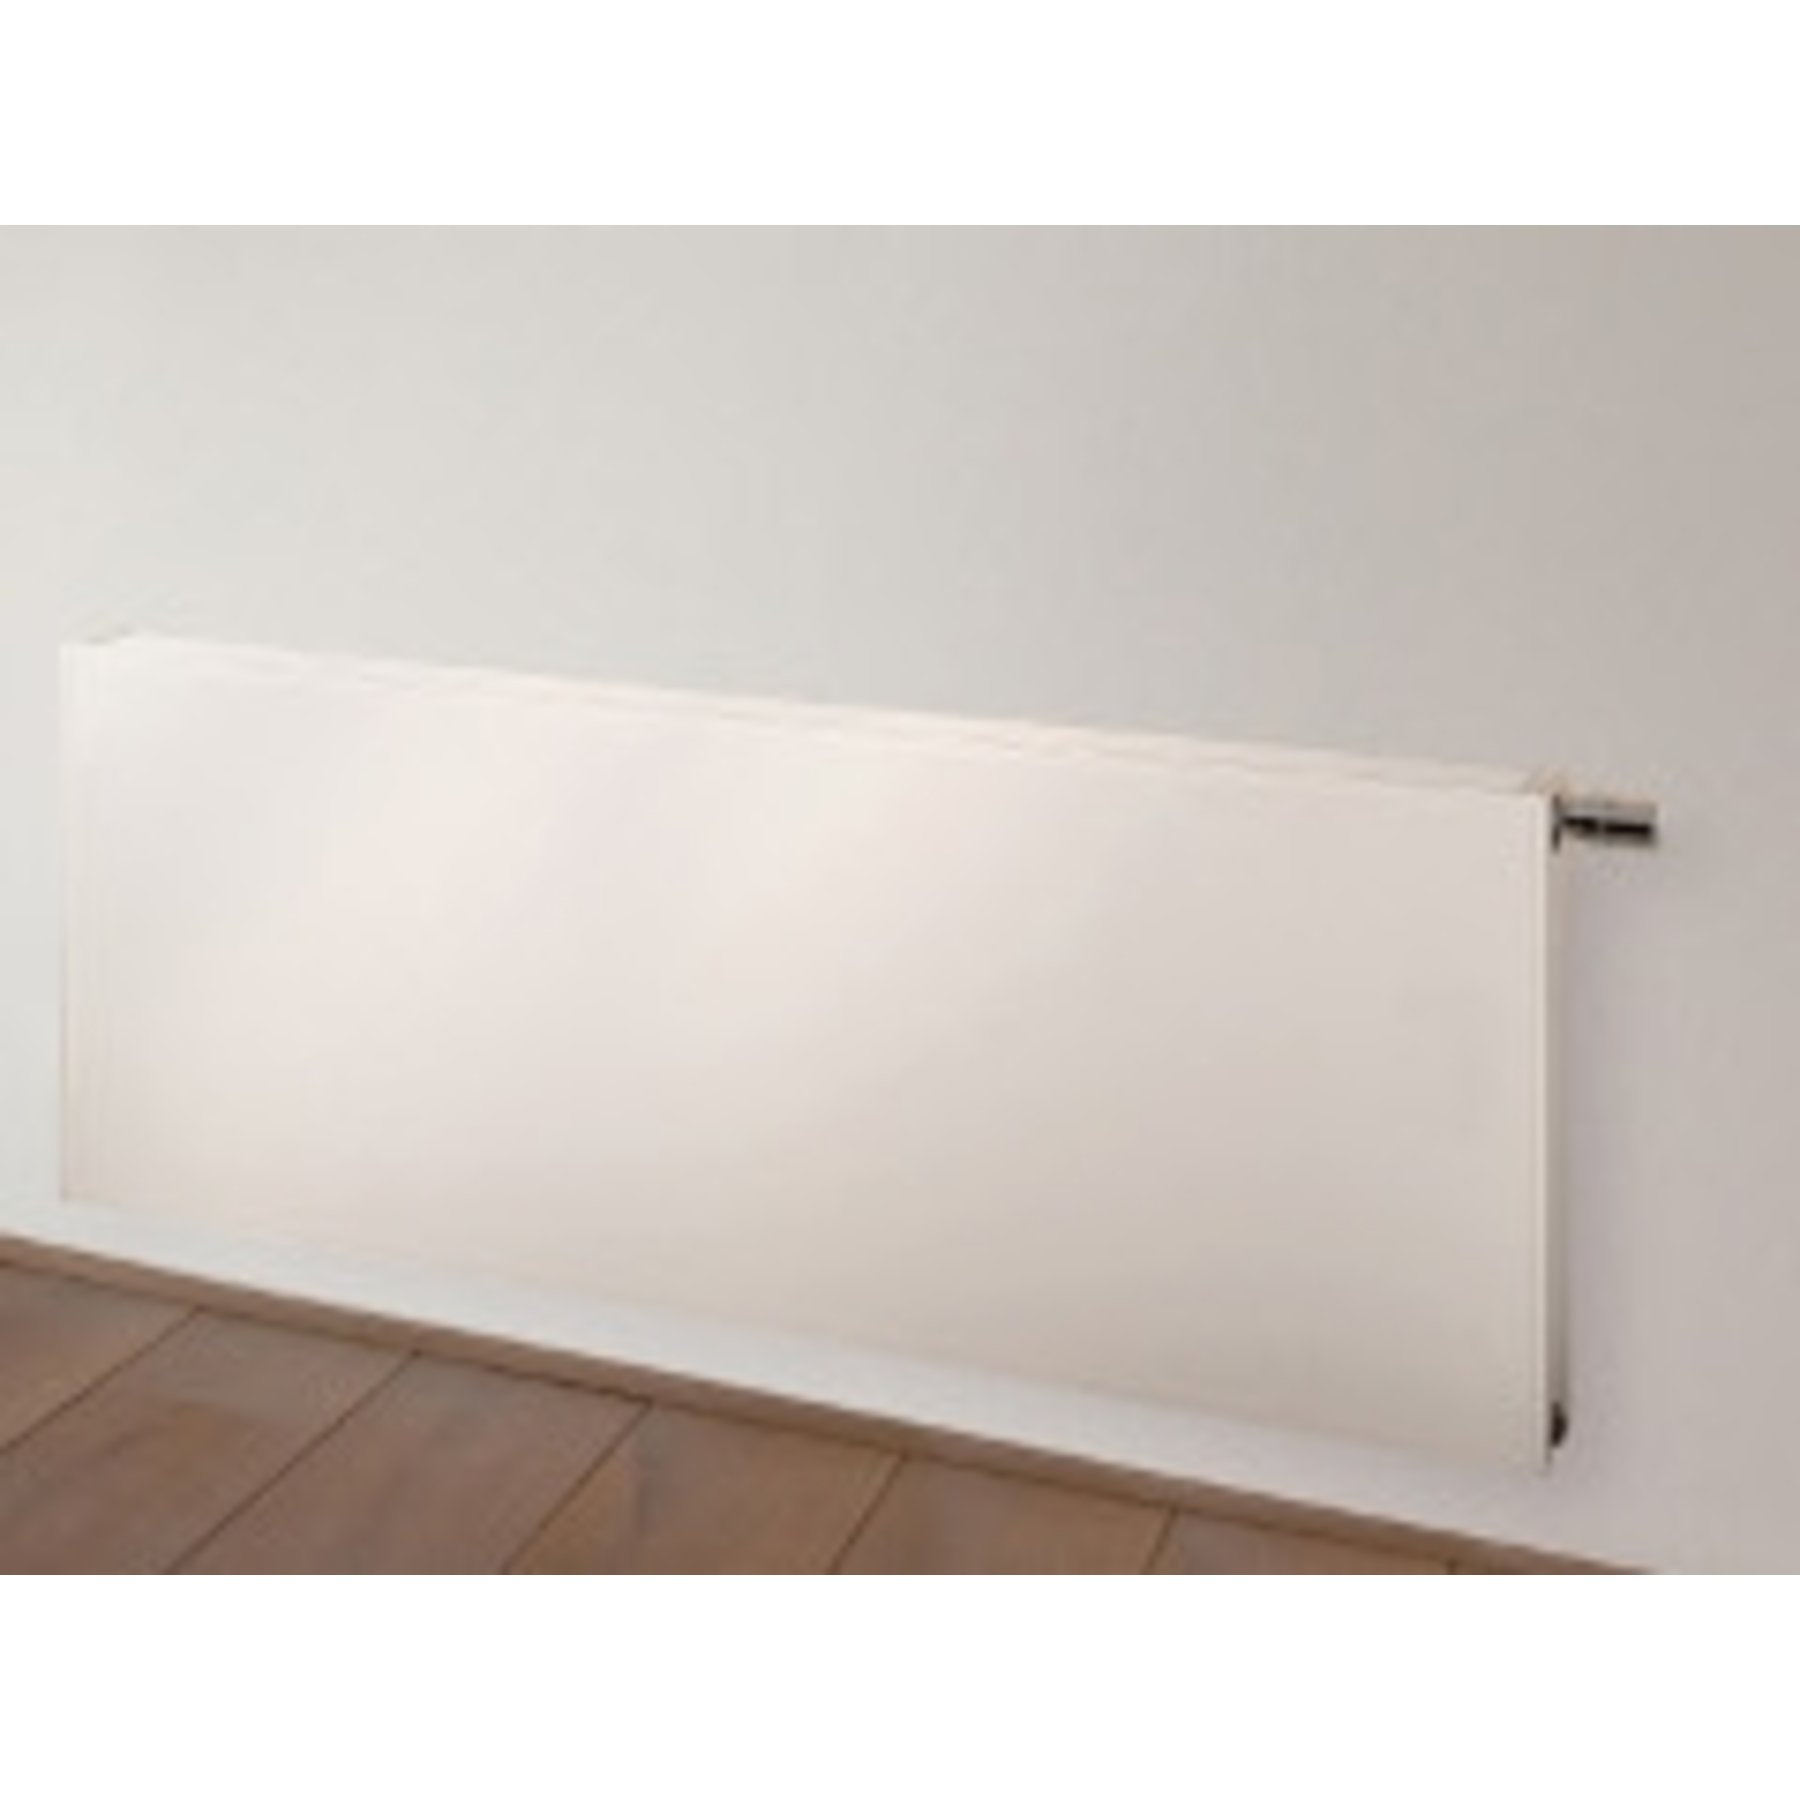 Vasco Flatline Paneelradiator type 33 900x400mm 1286W vlak wit structuur (S600)